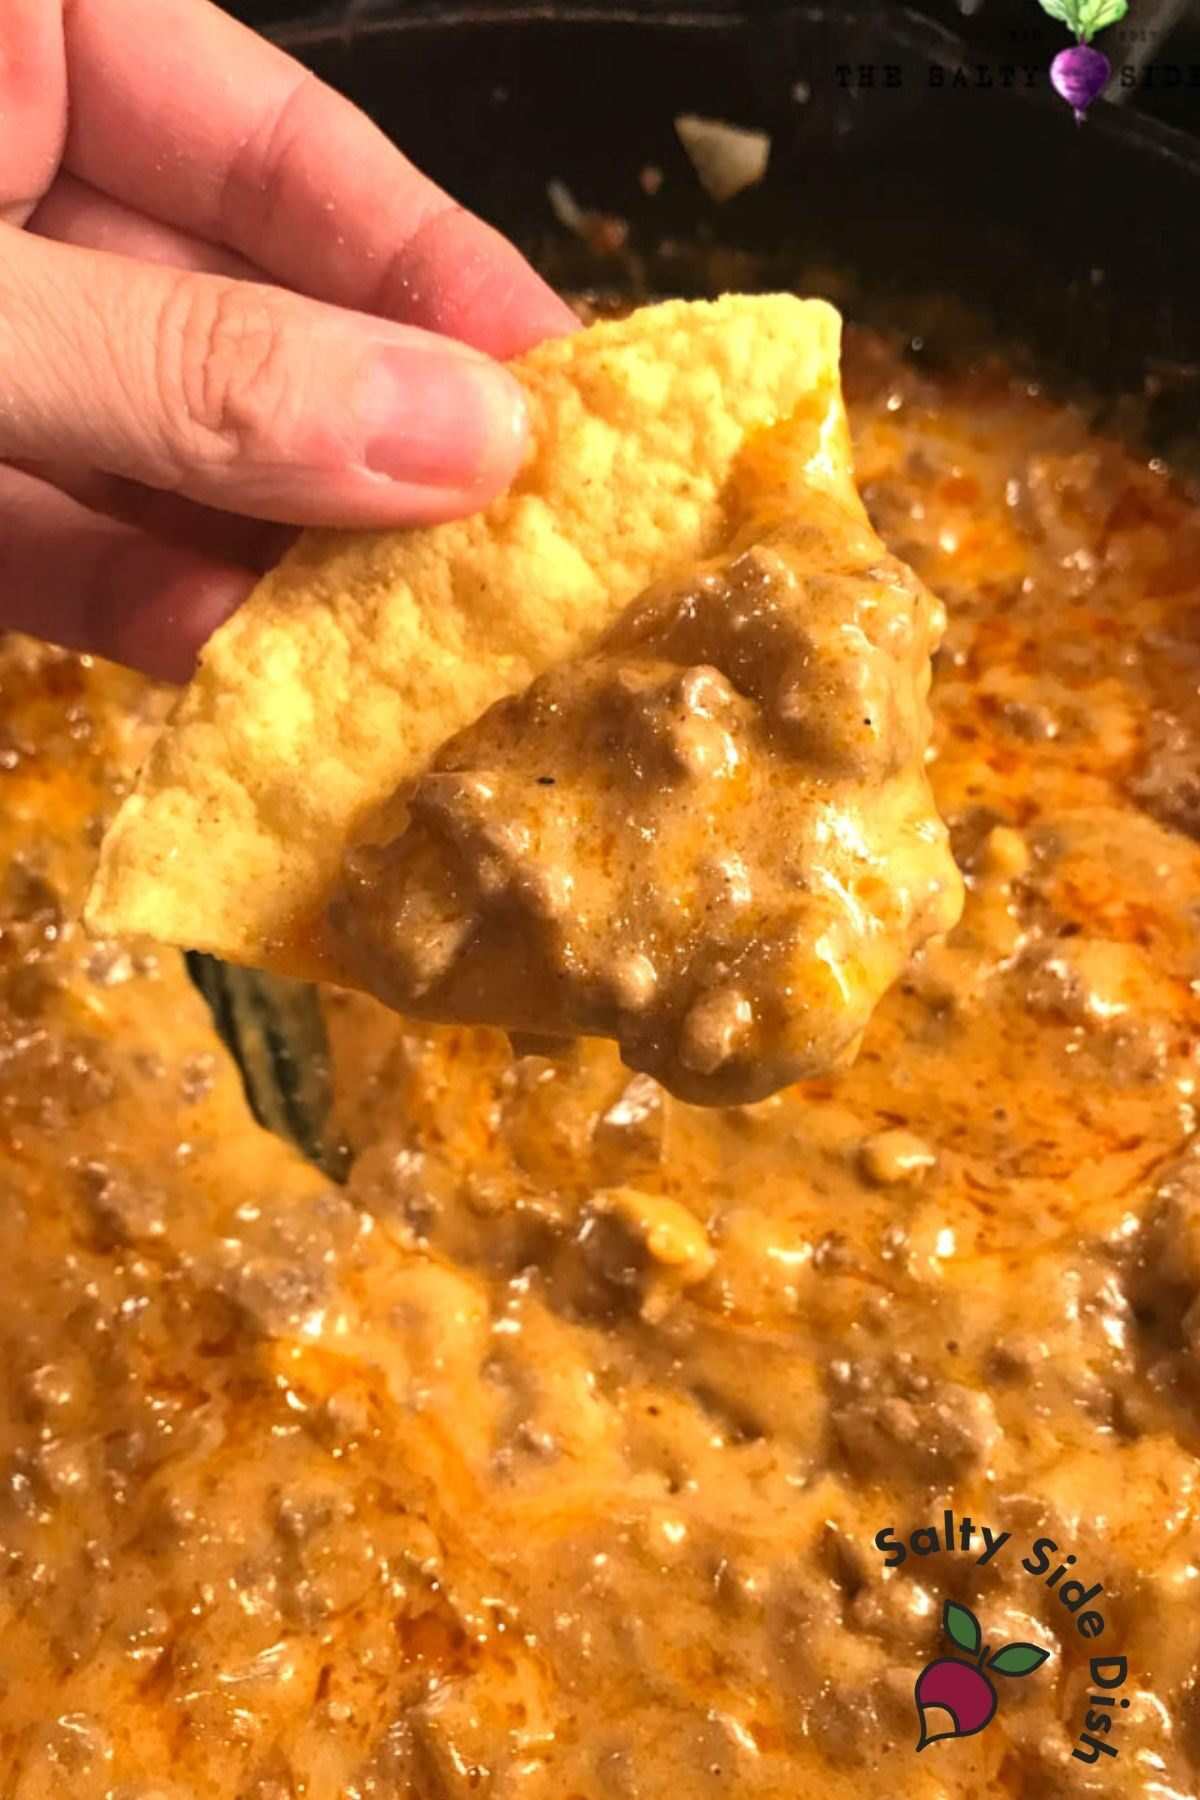 holding a beef enchilada chip with dip.